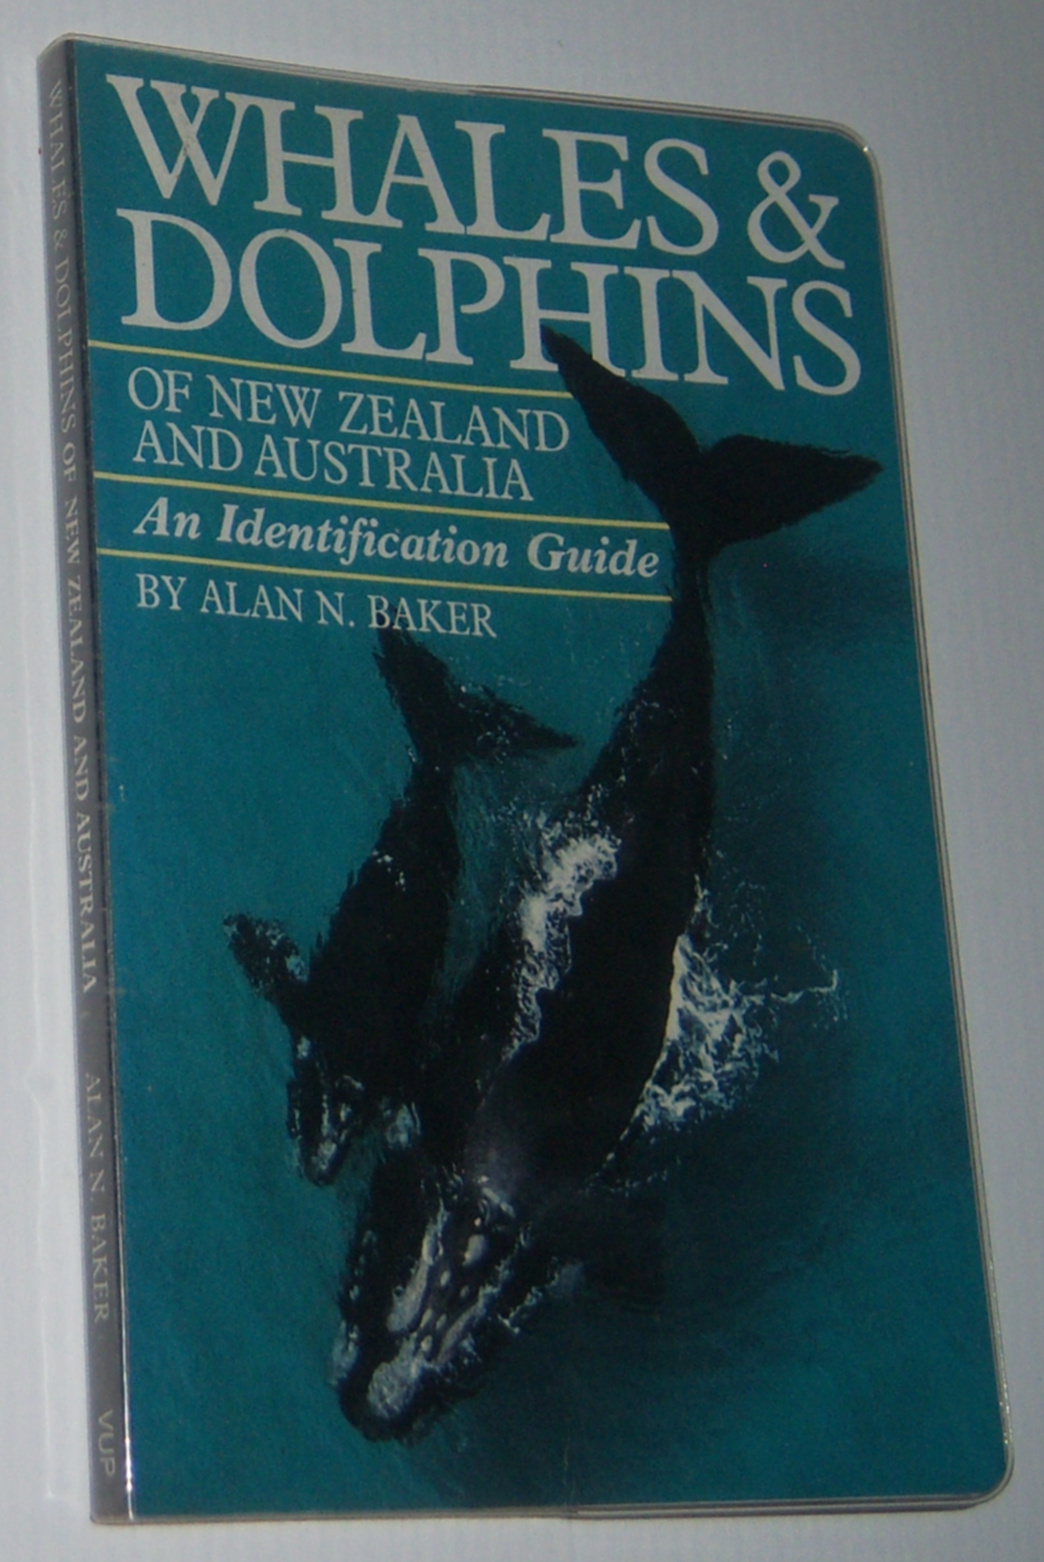 Image for WHALES AND DOLPHINS OF NEW ZEALAND AND AUSTRALIA: An Identification Guide